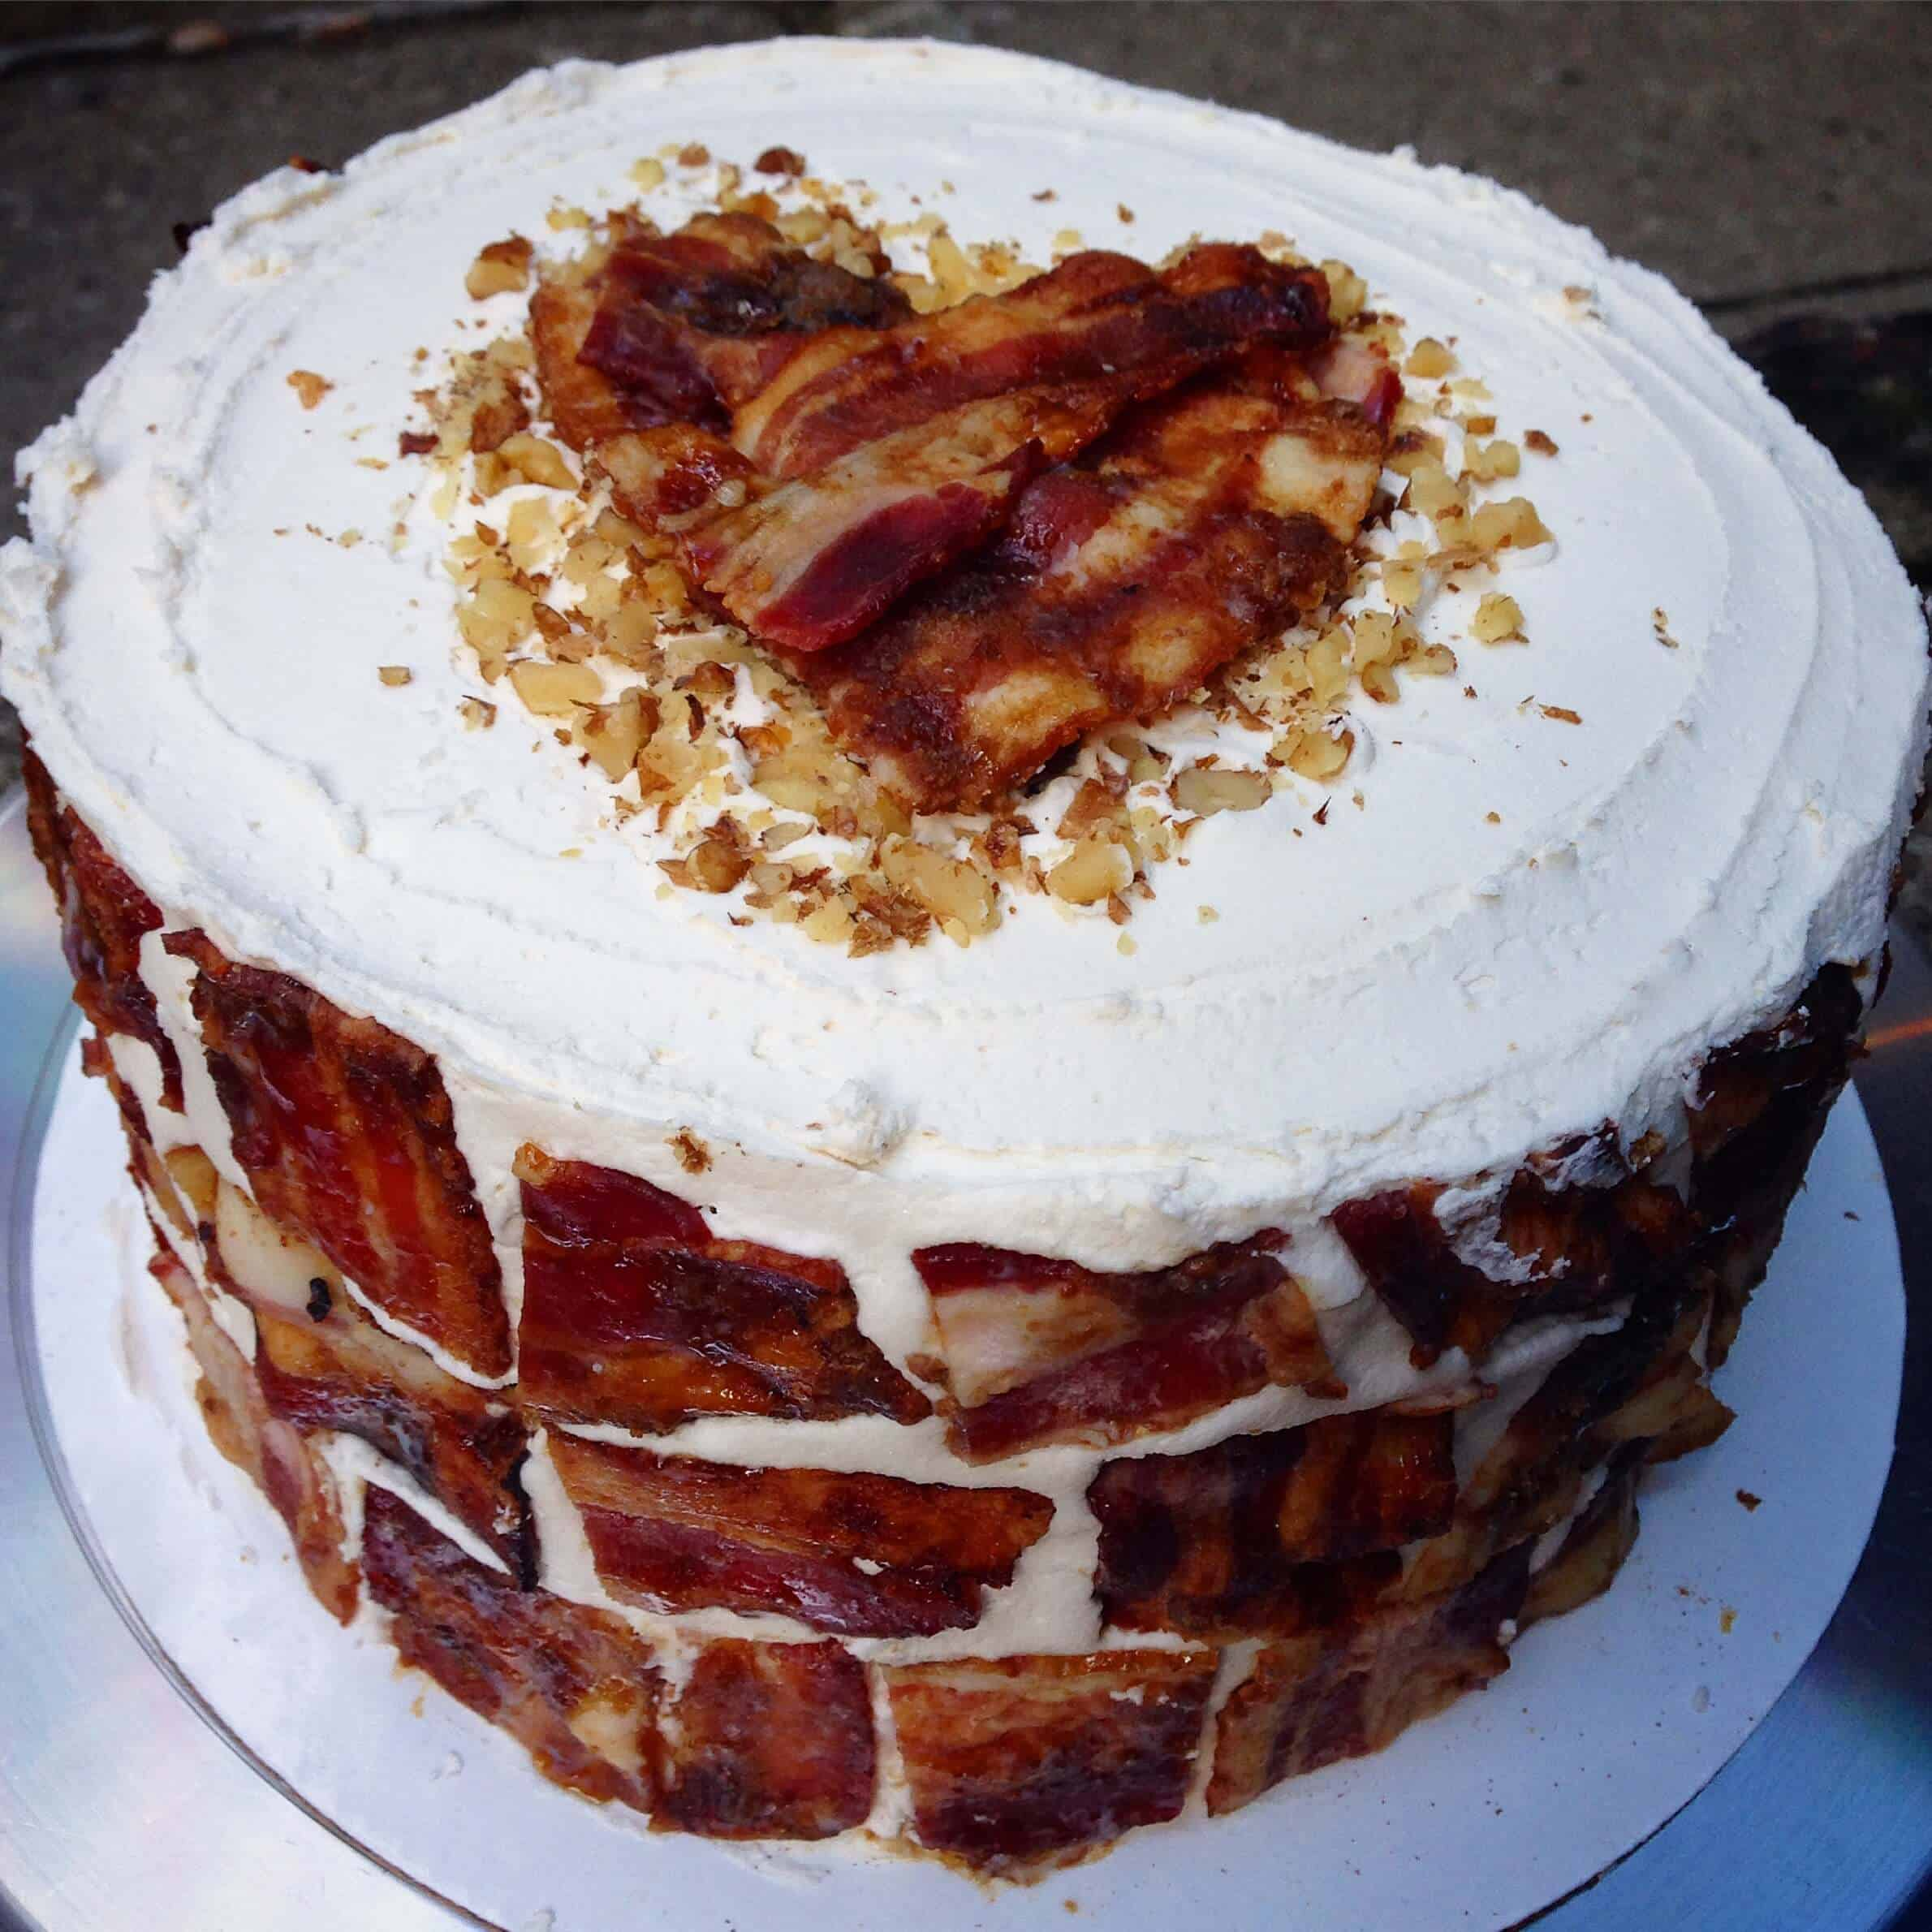 Tremendous The Maple Bacon Breakfast Birthday Cake Chelsweets Funny Birthday Cards Online Aboleapandamsfinfo